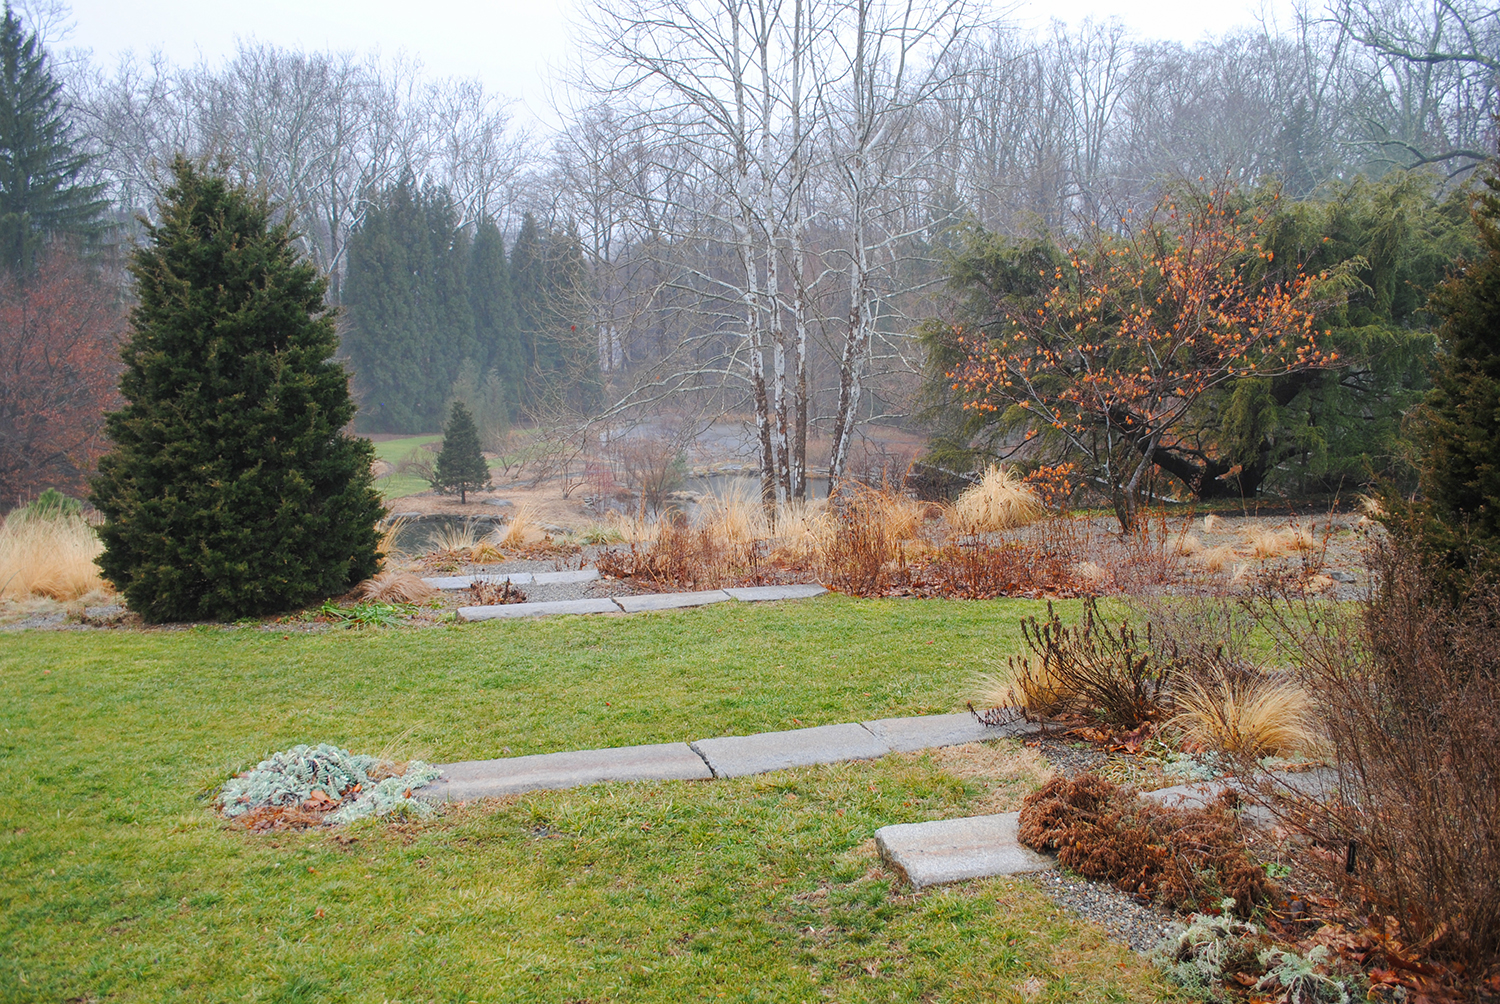 A glance towards the pond.  Nary a weed to be seen.